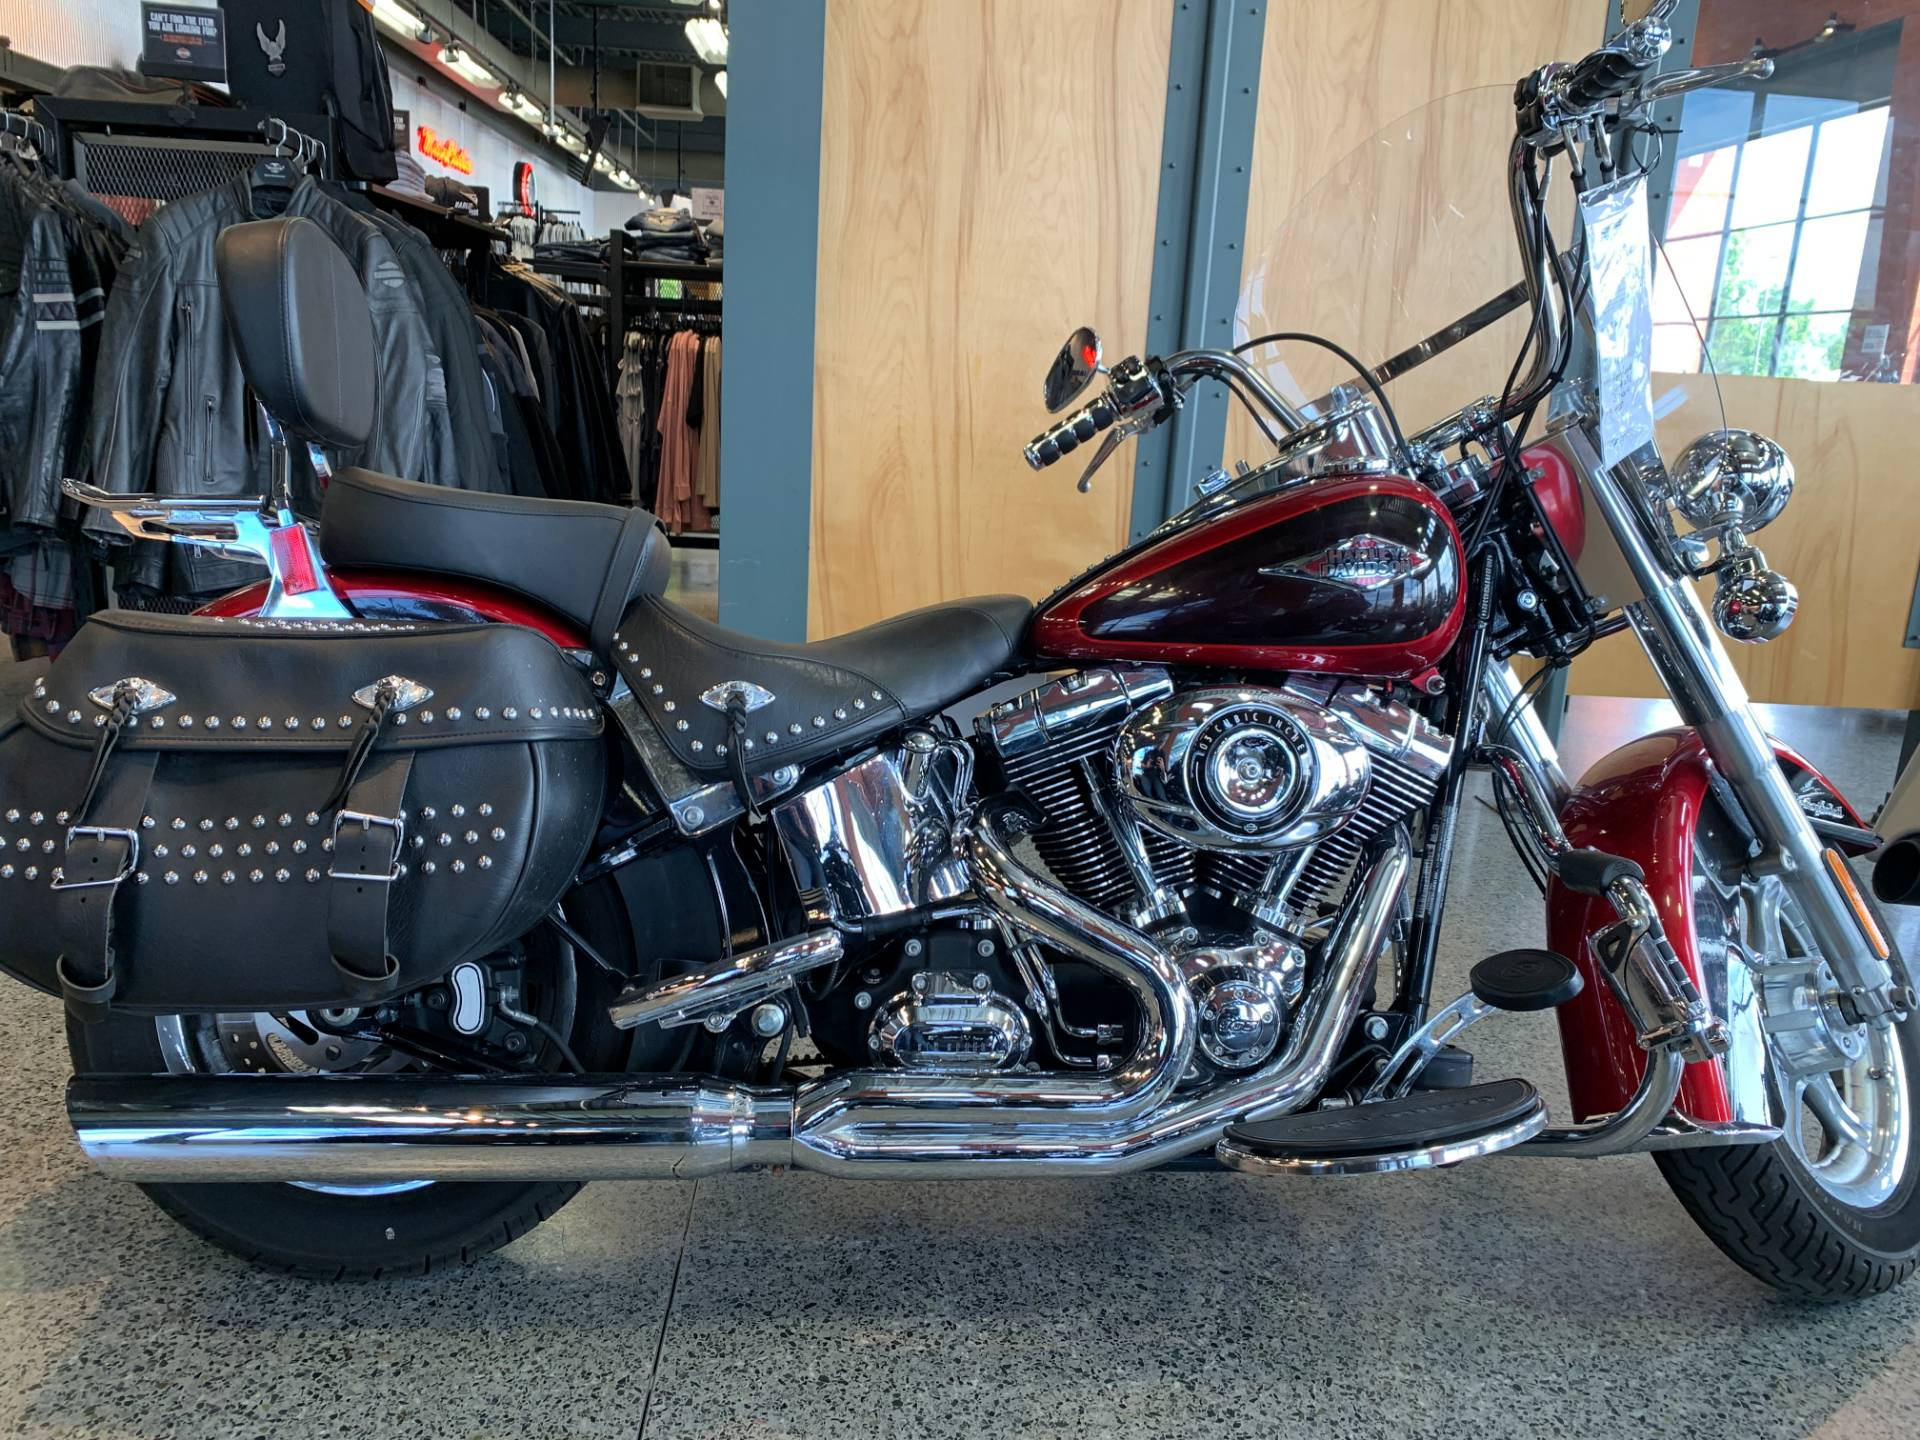 2012 Harley-Davidson FLSTC103 in Waterford, Michigan - Photo 1